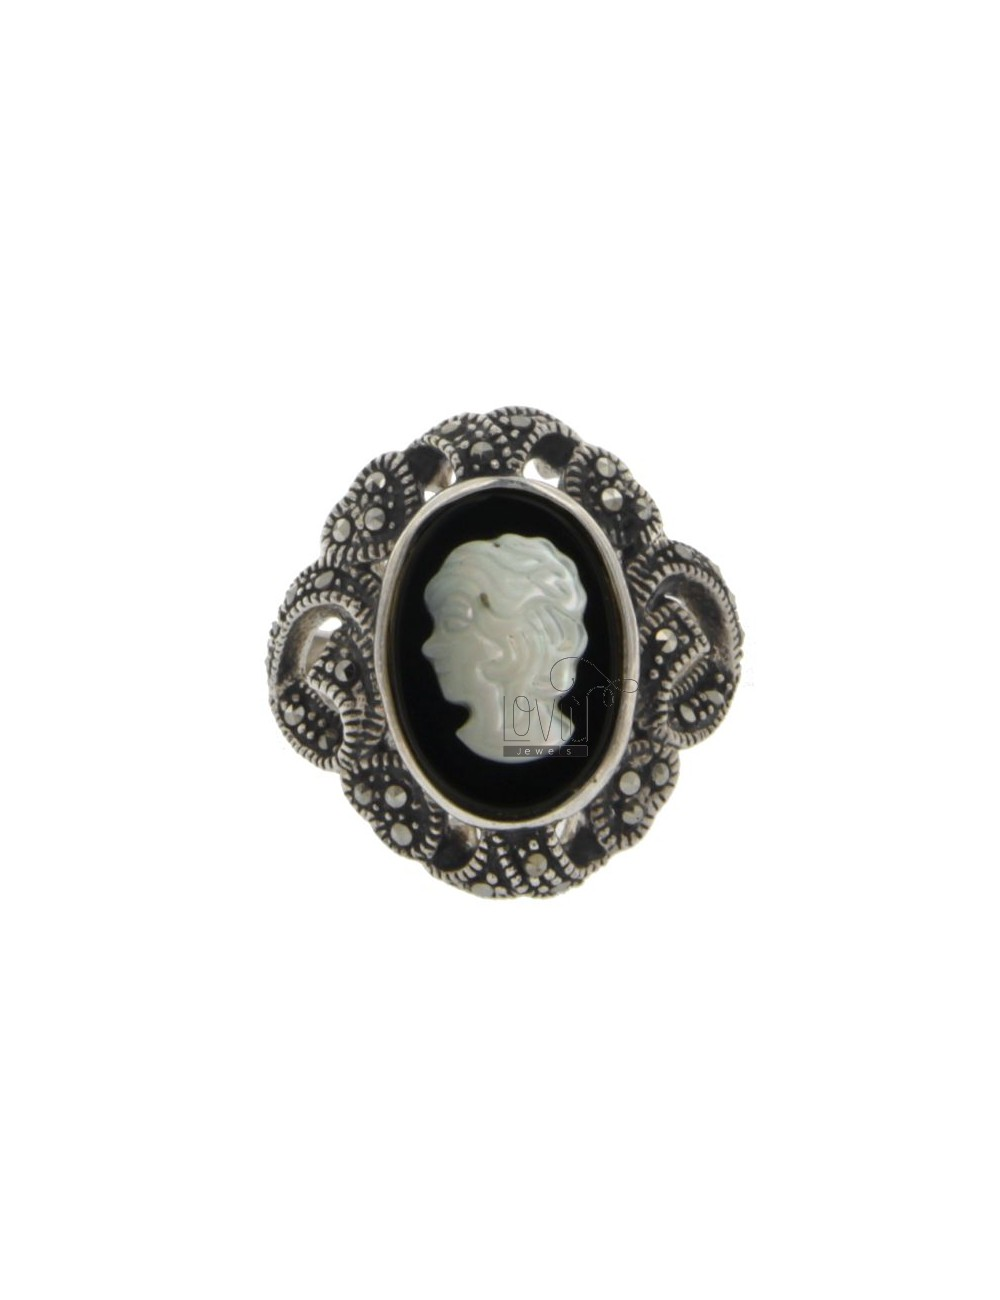 OVAL RING WITH CAMEO IN AND MARCASITE AG BRUNITO TIT 925 ‰ SIZE 16